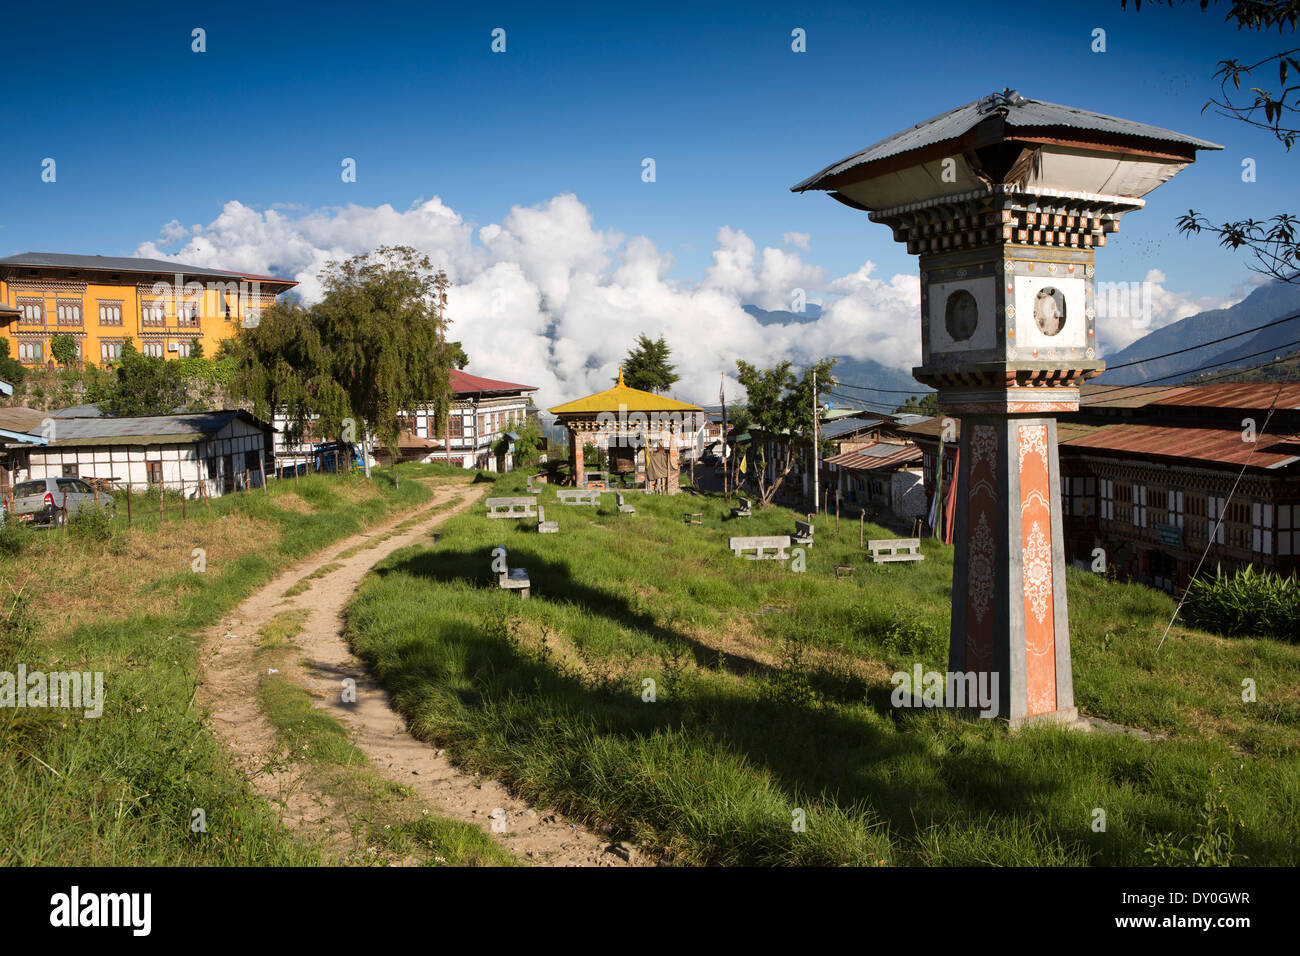 Eastern Bhutan, Mongar, town centre, derelict clock tower in park Stock Photo